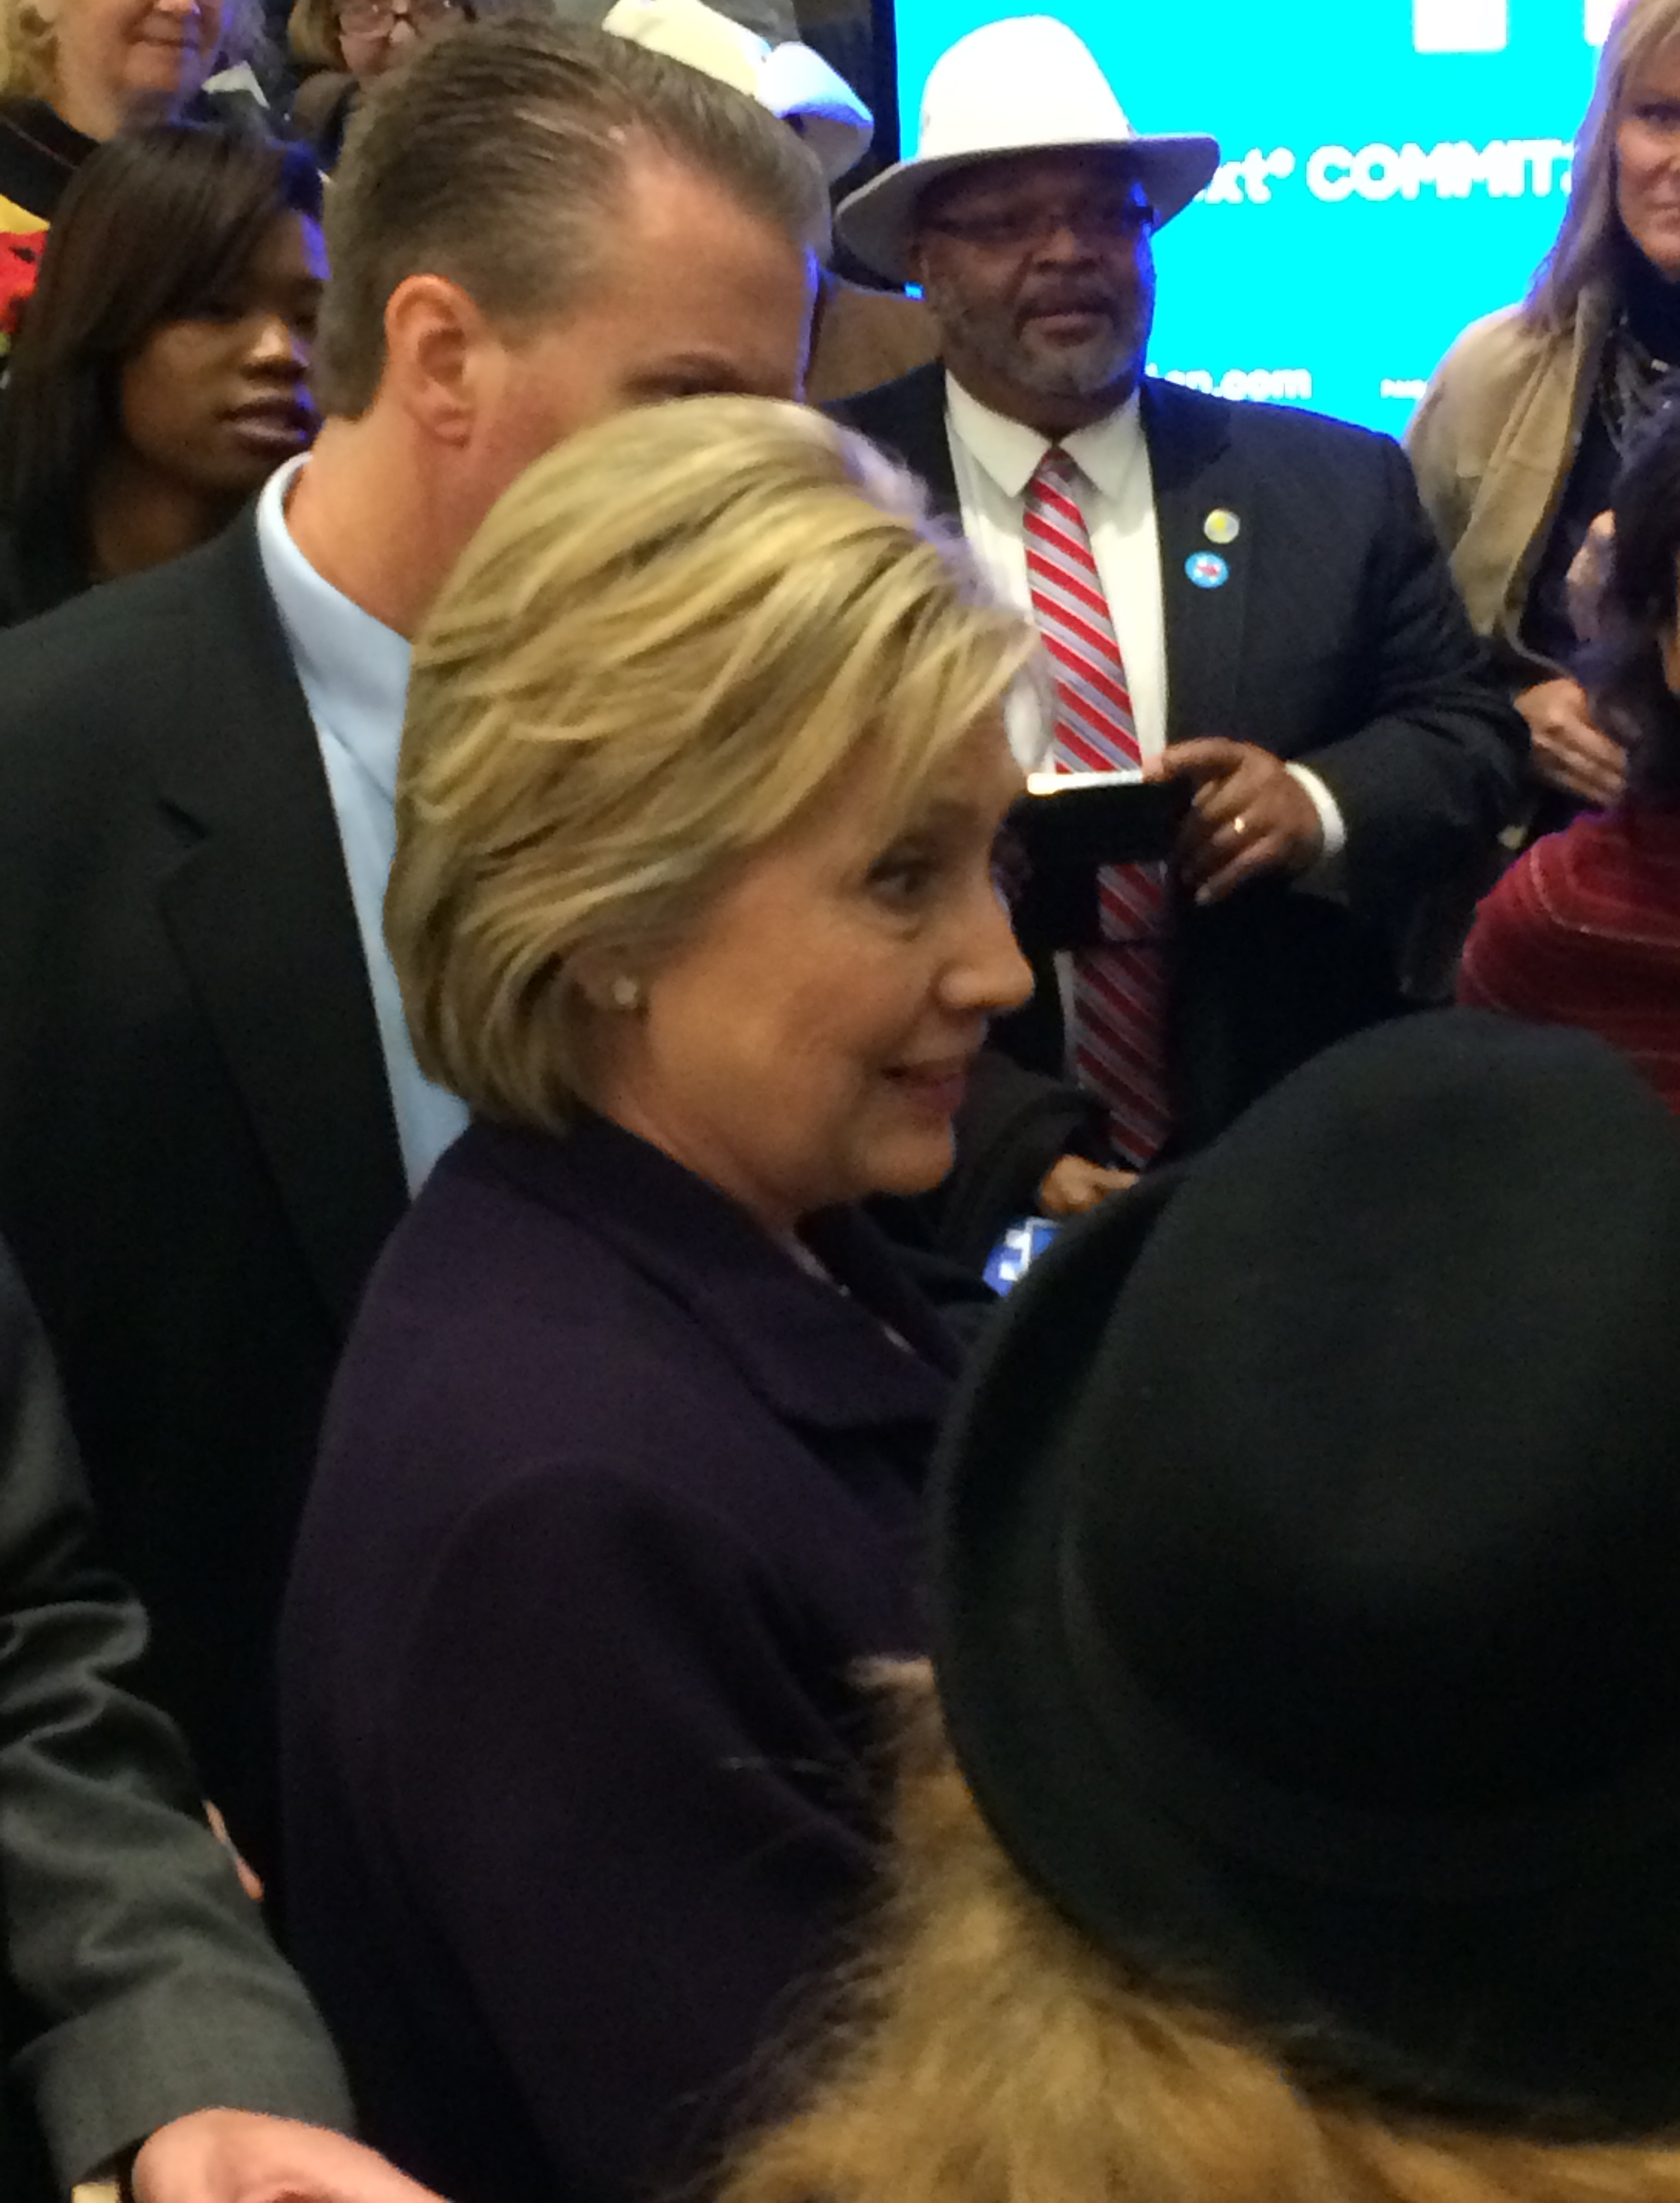 Right before Hillary walked out the door and on to her next campaign stop, I got within feet of her.